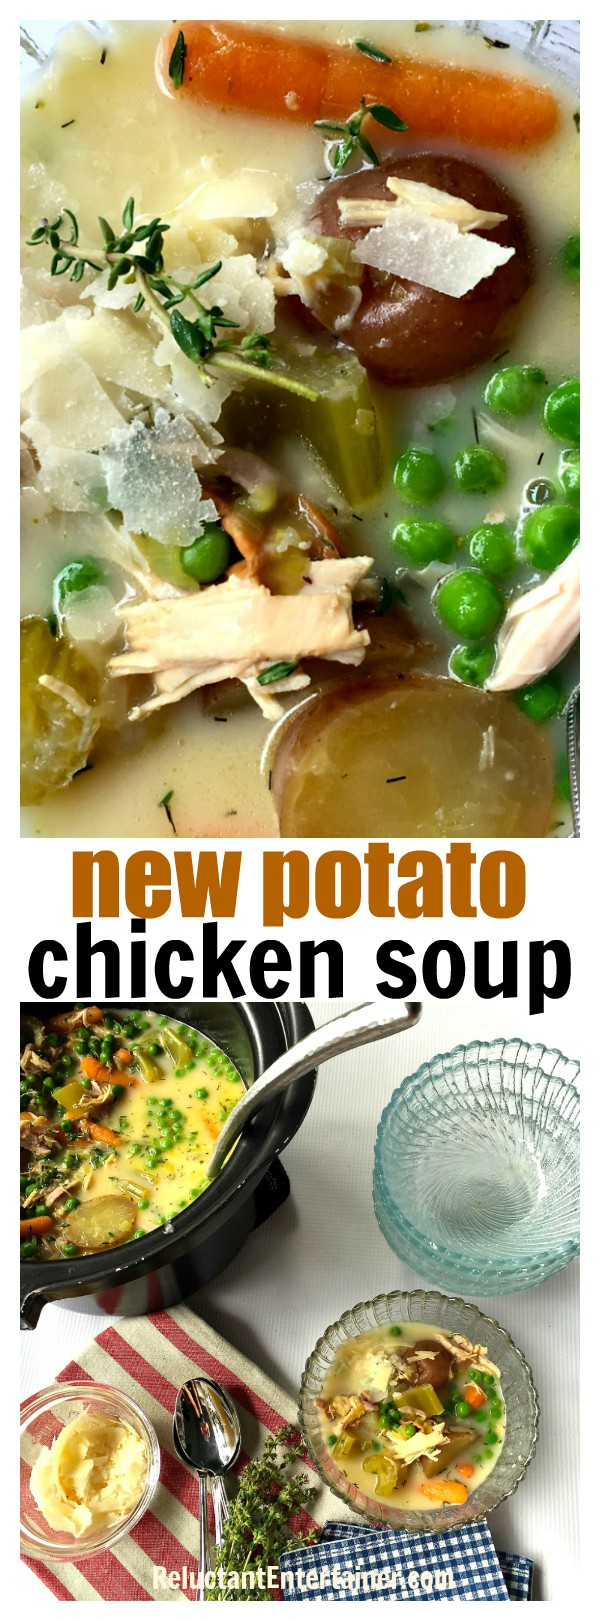 New Potato Chicken Soup--easy crock pot version of new potatoes and peas, made with Rotisserie chicken, herbs, and fresh veggies!